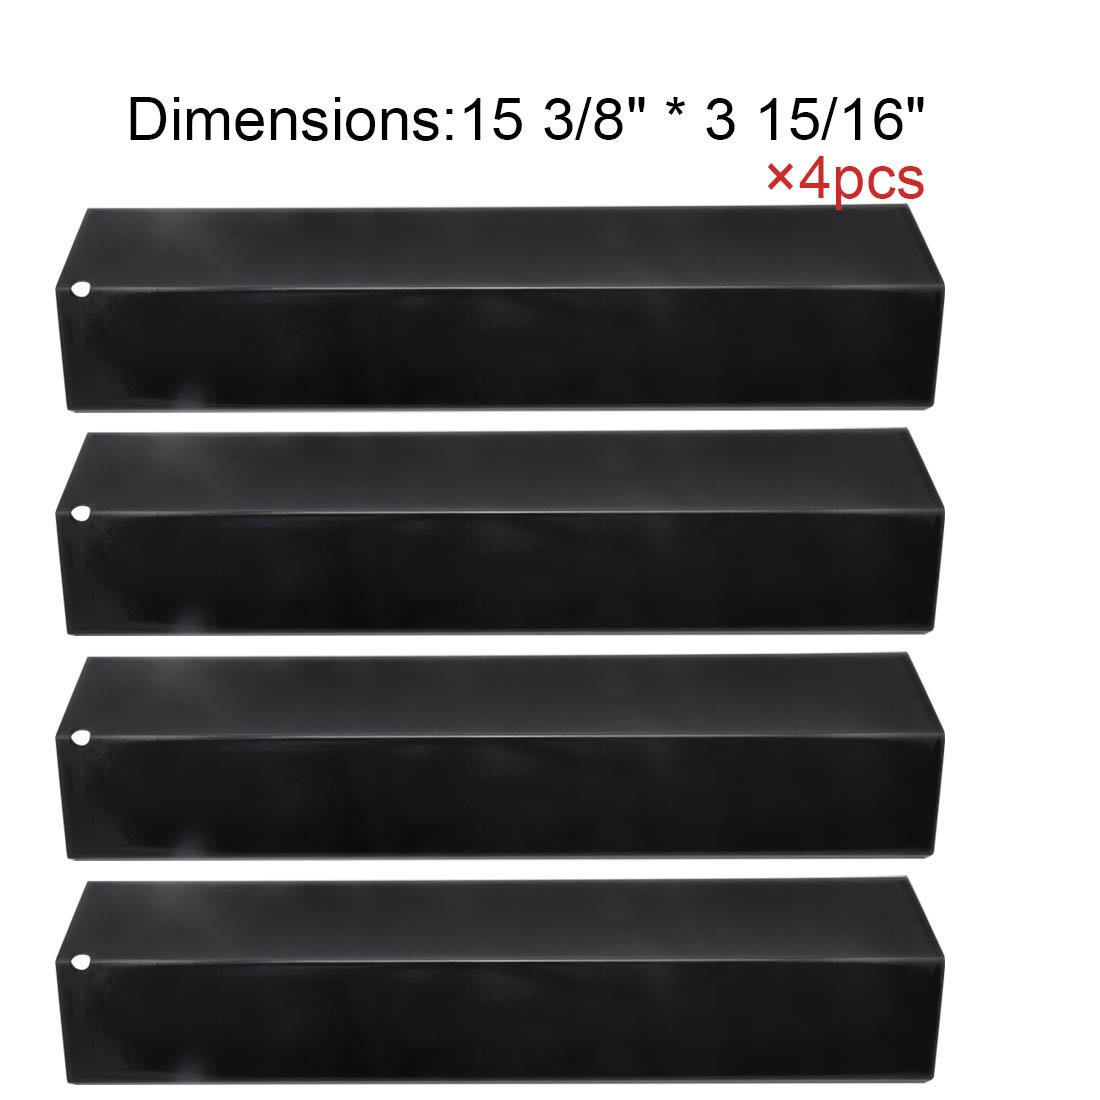 92311(4-pack) Porcelain Steel Heat Plate for Aussie, Brinkmann, Uniflame, Charmglow, Grill King, Lowes Model Grills BBQ Mart PP2311